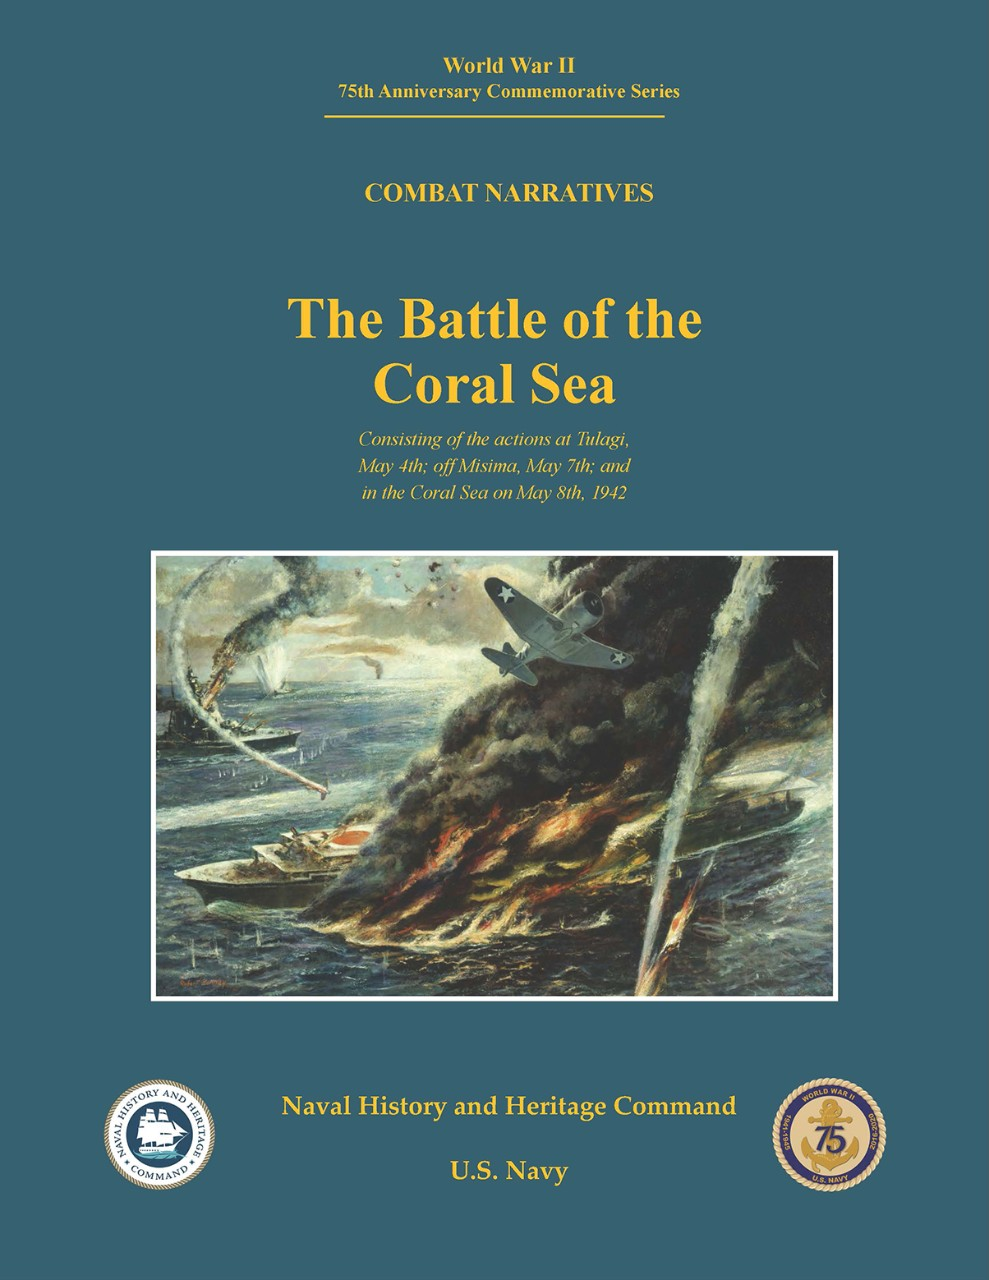 the battle of coral sea essay The united states lost the 'uss lexington at the battle of the coral sea while  the japanese only lost a small carrier, planes from 'lexington'.